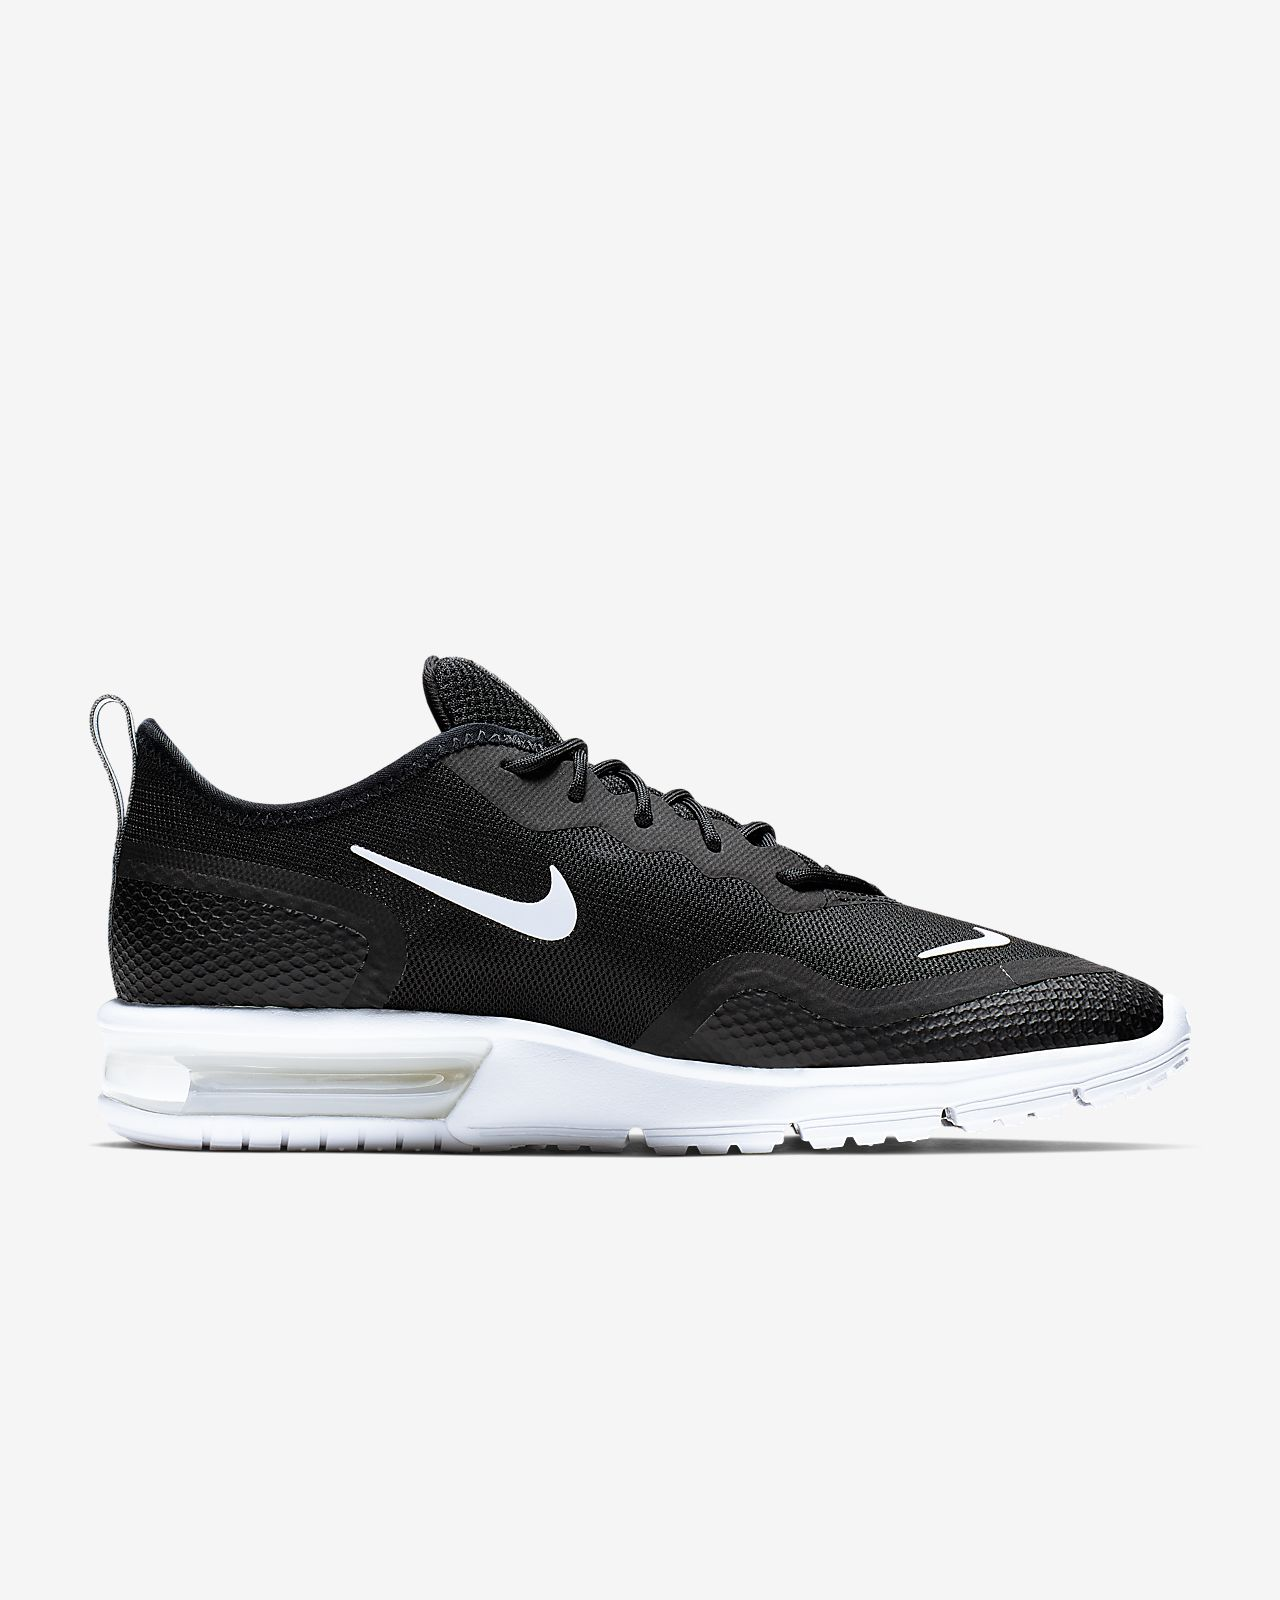 Damen nike Schwarz weiß Air Max Sequent 4.5 Sneaker